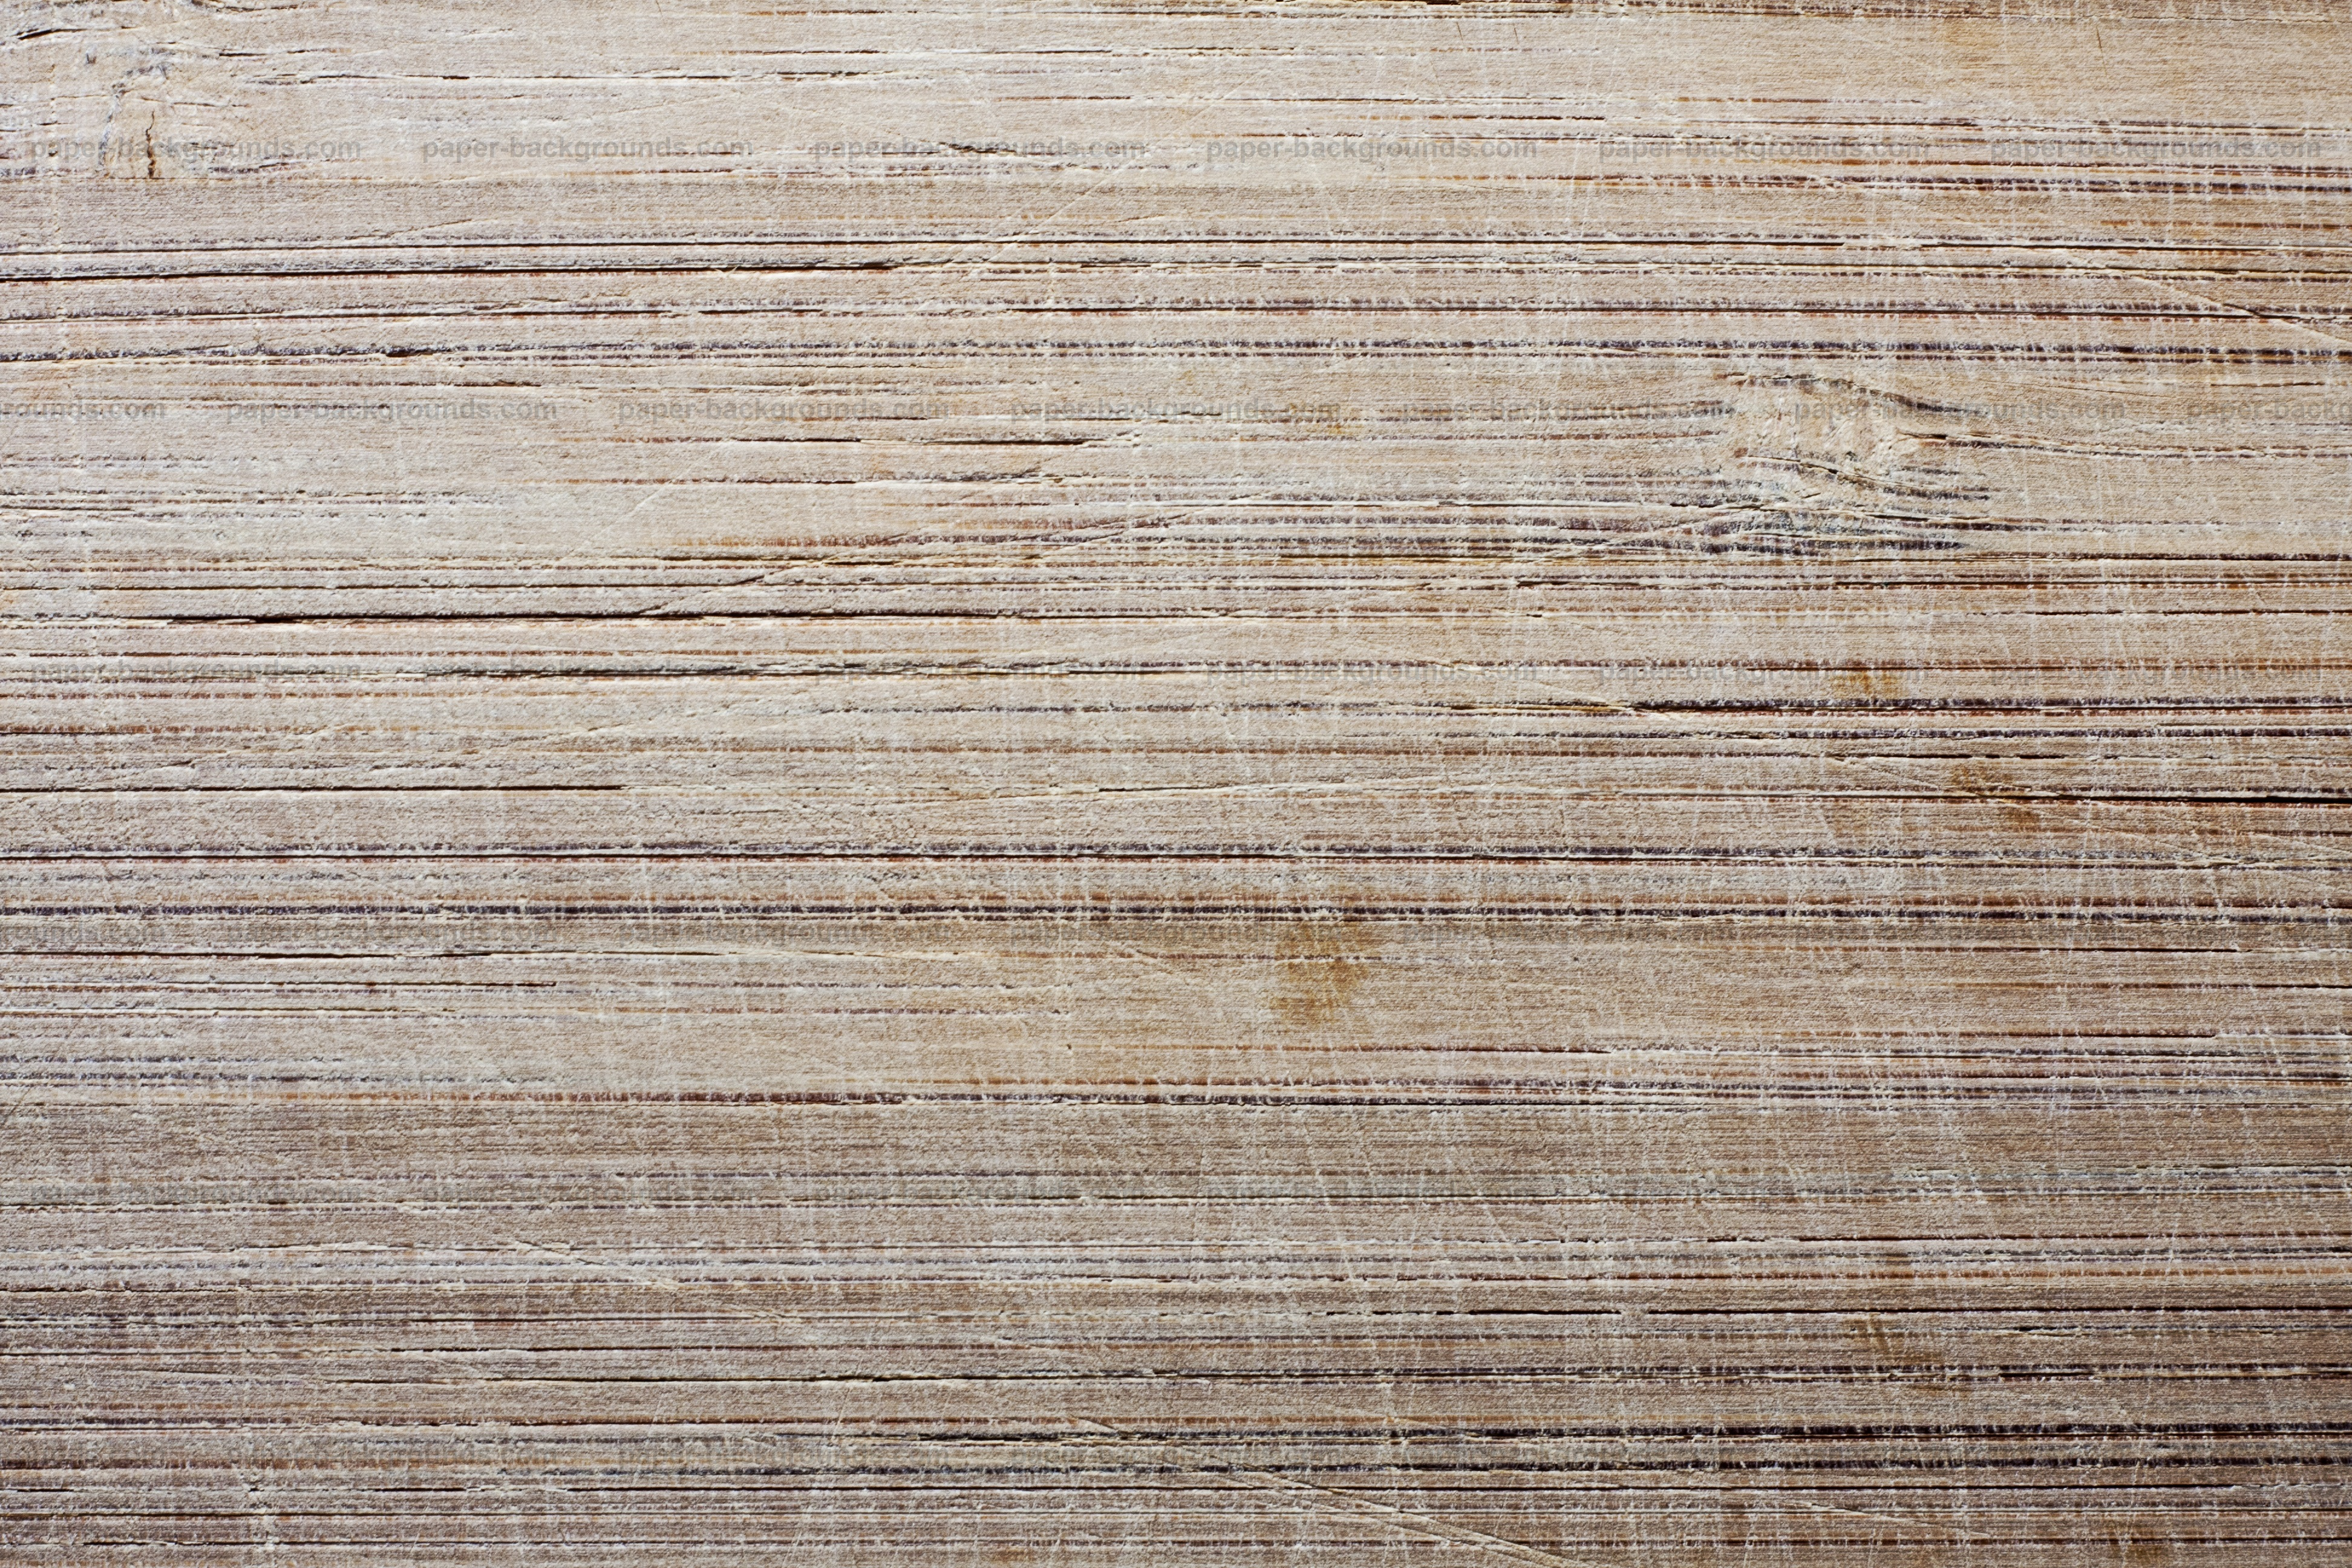 Paper Backgrounds | Bamboo Wood Texture